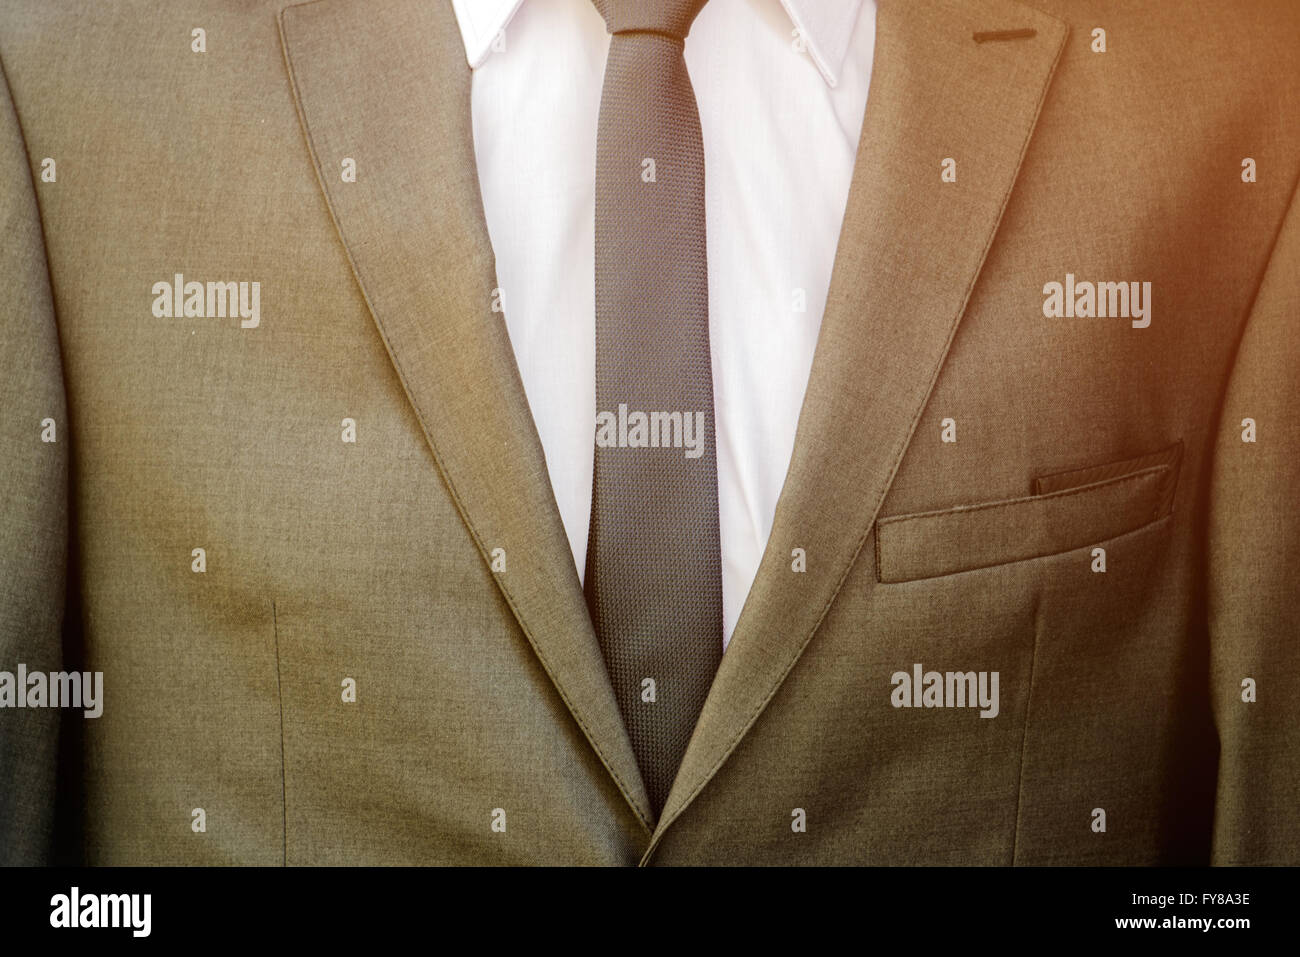 Modern business suit detail with white shirt and necktie, unrecognizable businessman. Stock Photo